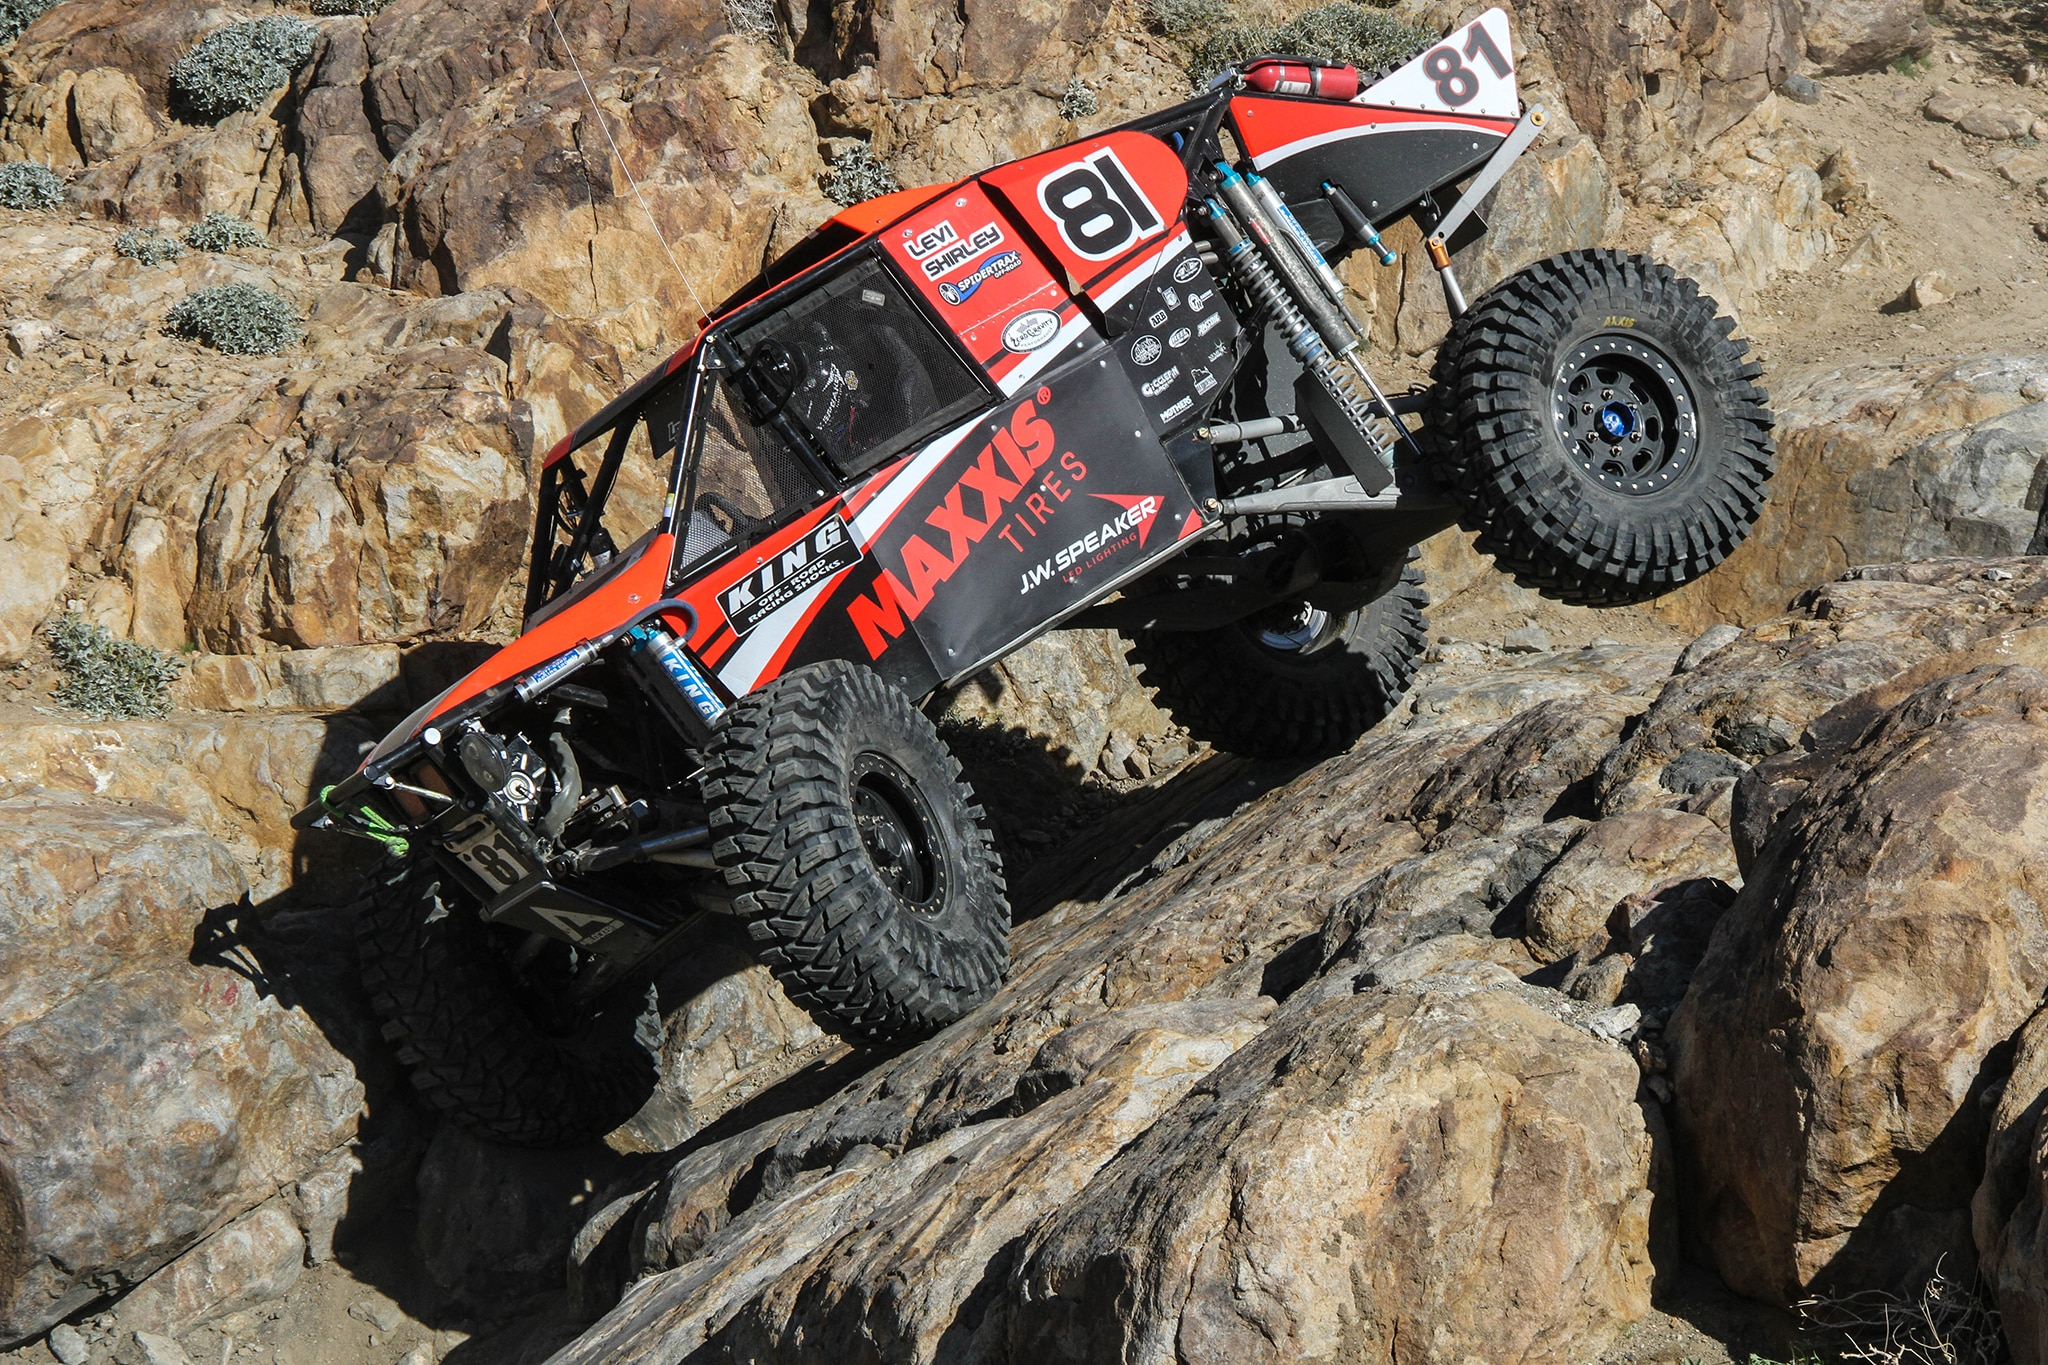 2019 King Of The Hammers Race 17